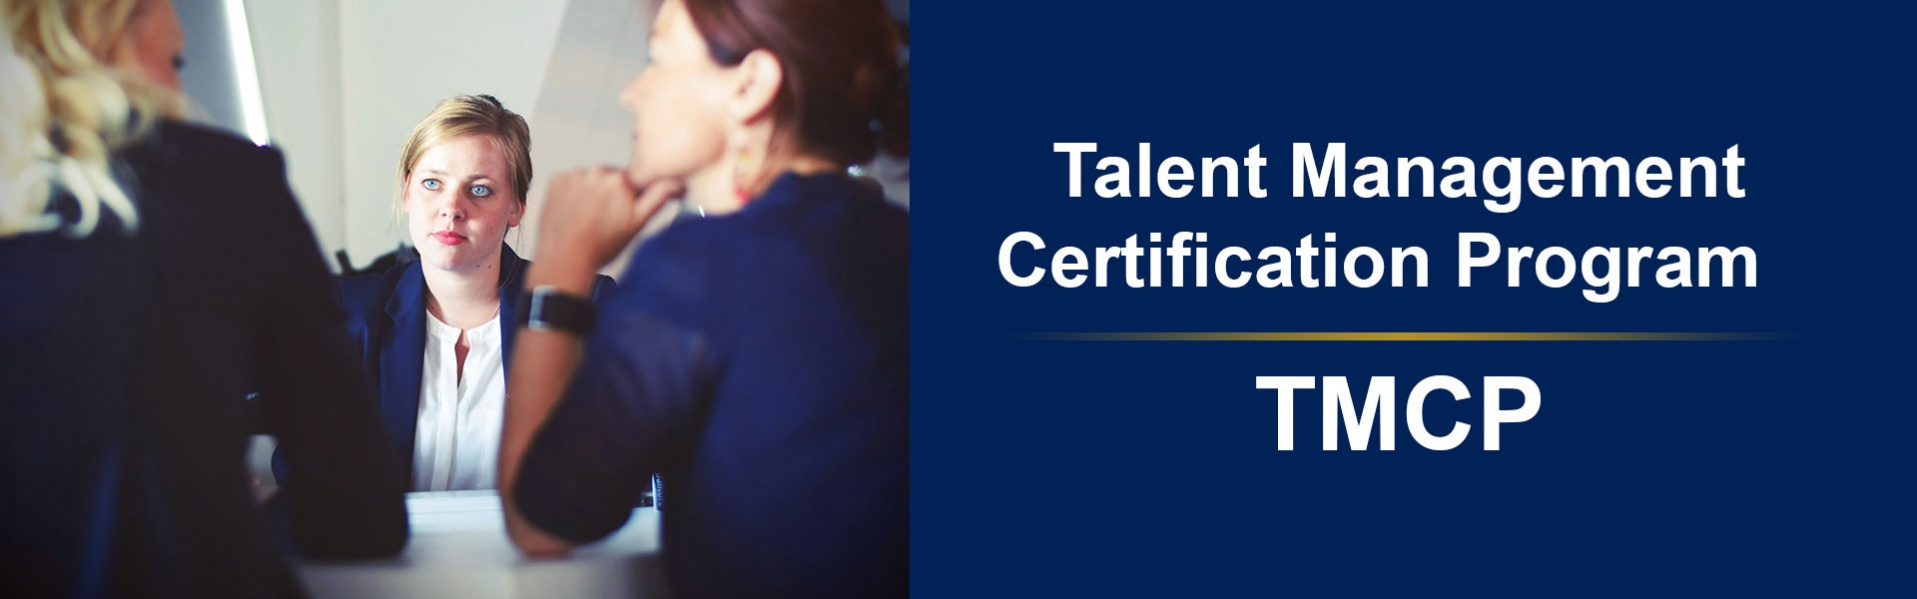 Talent Management Certification Program